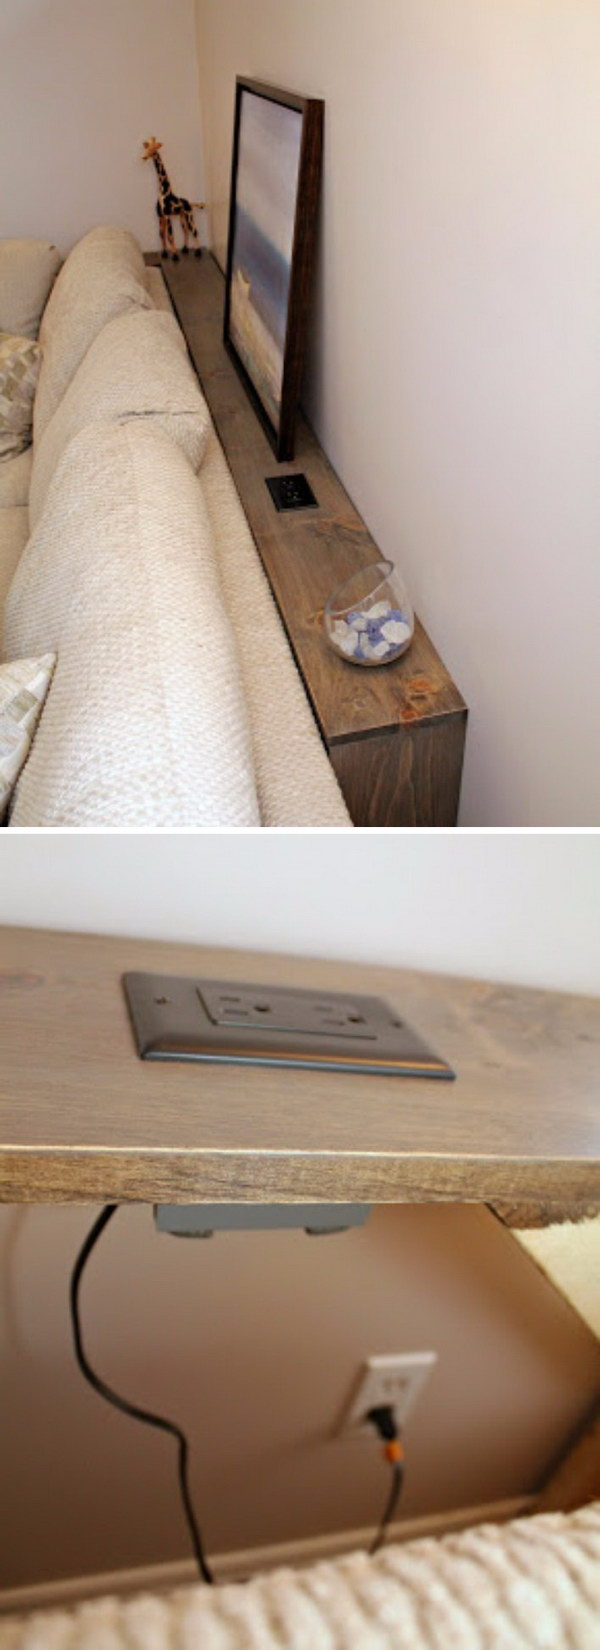 This DIY Sofa Table Behind Built In Outlets Allows You Plug In Your Electronics Easily.